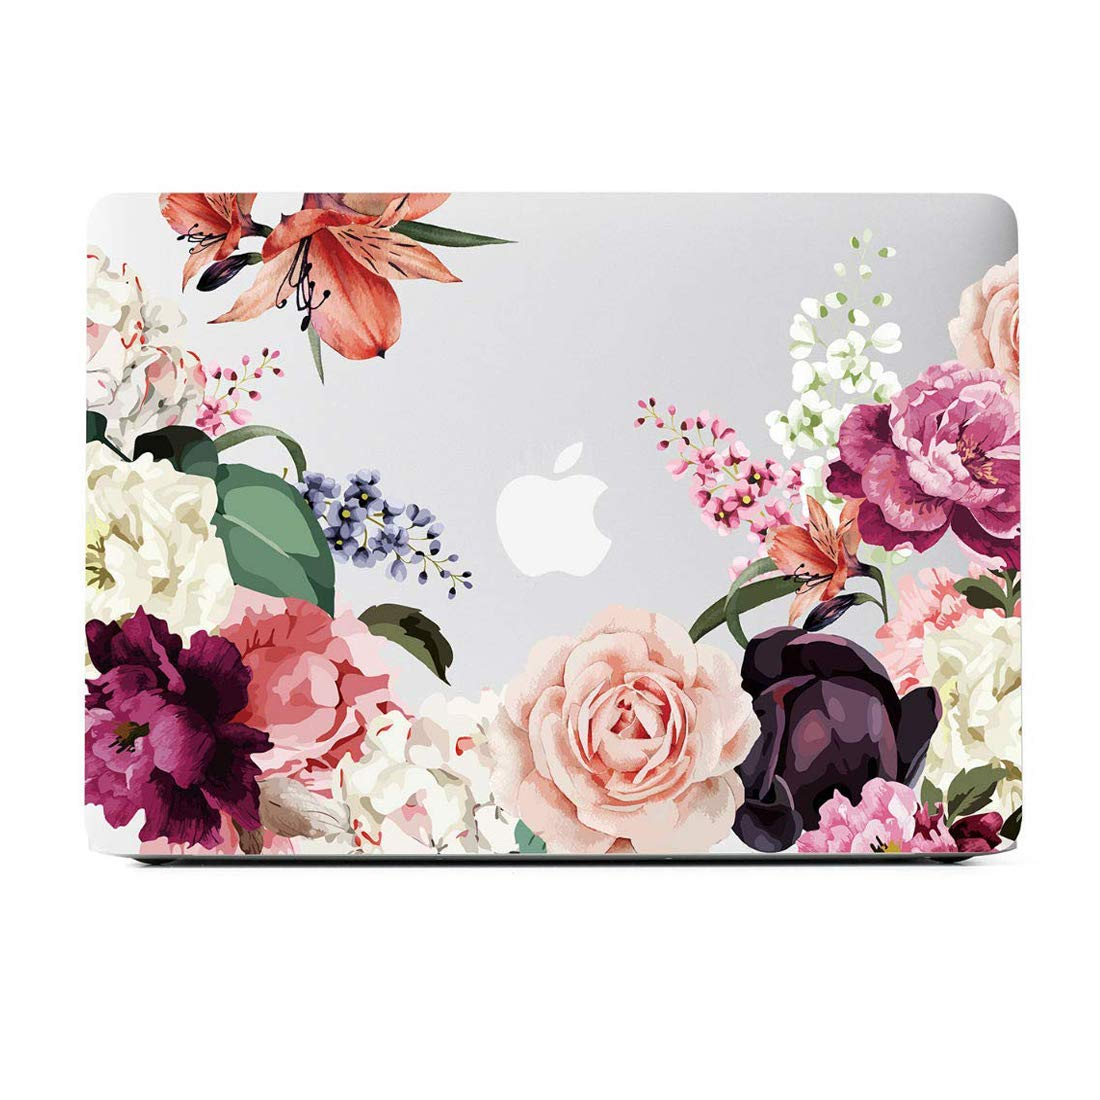 MacBook Pro 13 Case 2018 2017 2016 Release A1989 A1706 A1708, Rose Flower Design Soft Touch Matte See Through Hard Shell Clear Case for MacBook Pro 13 Inch & Keyboard Cover